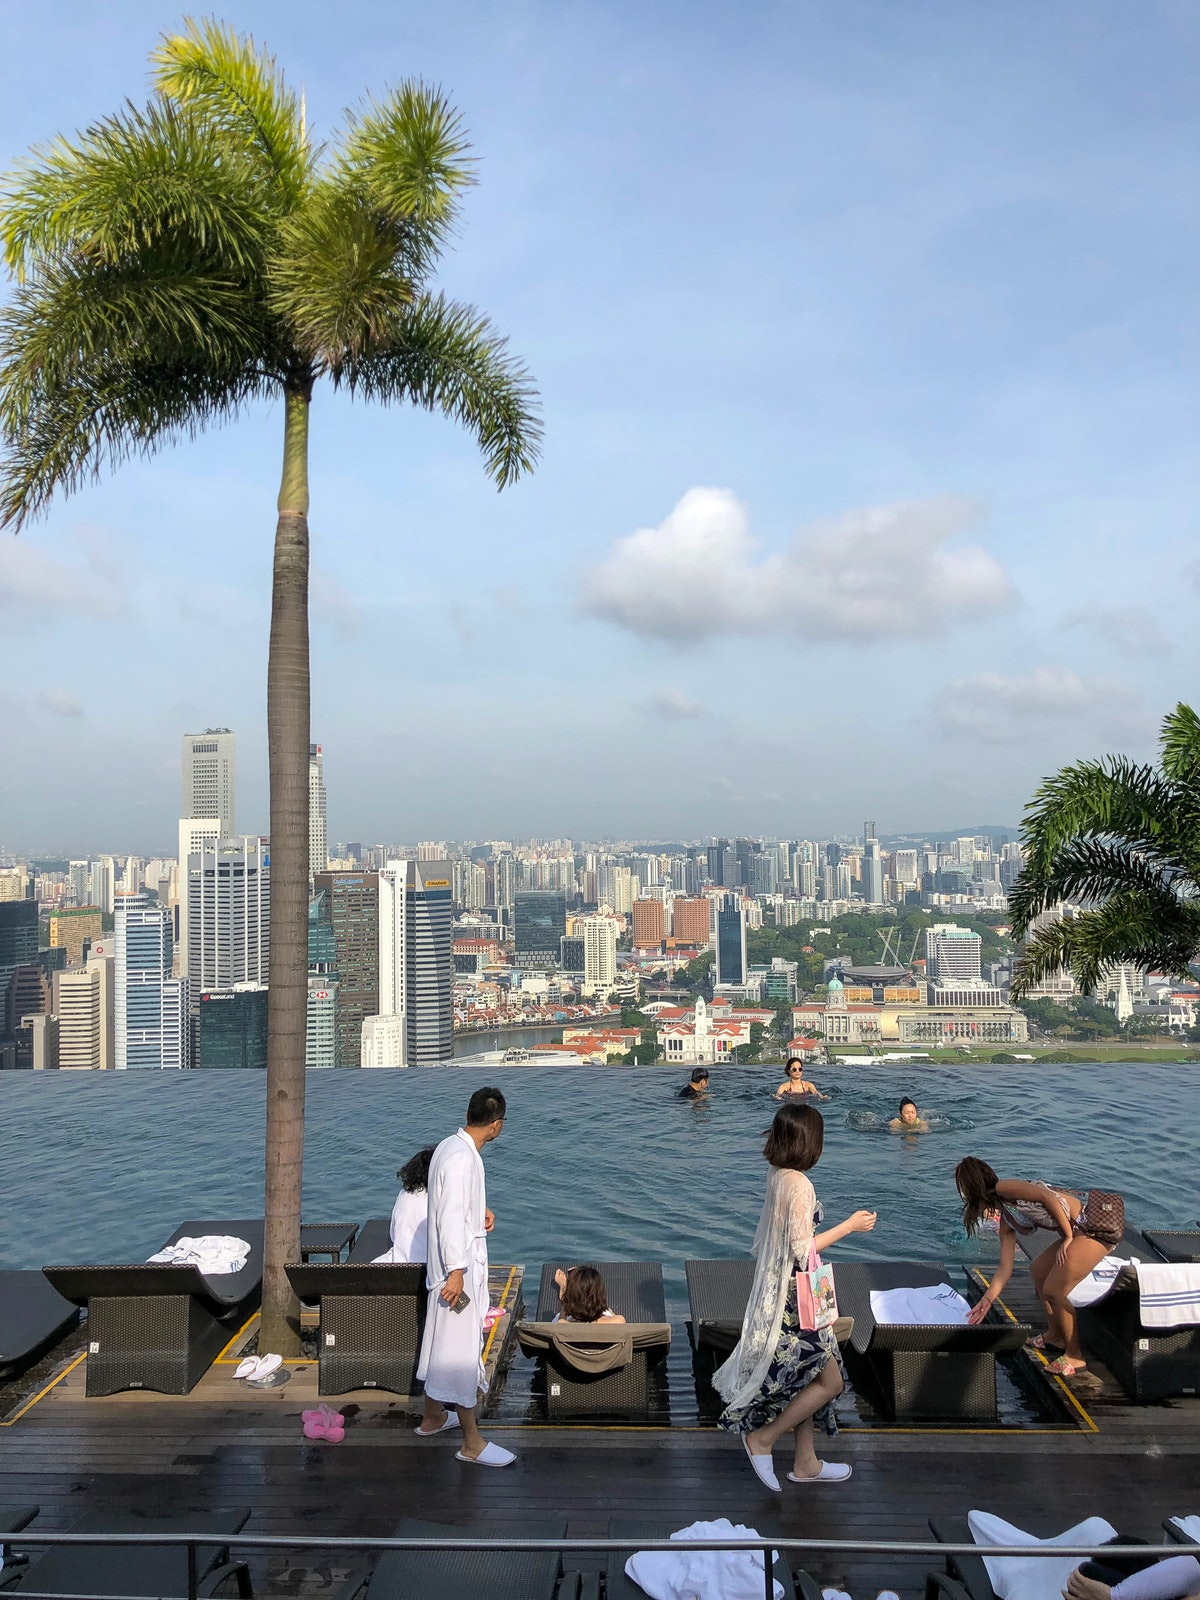 The swimming pool on top of the Marina Bay Sands in Singapore